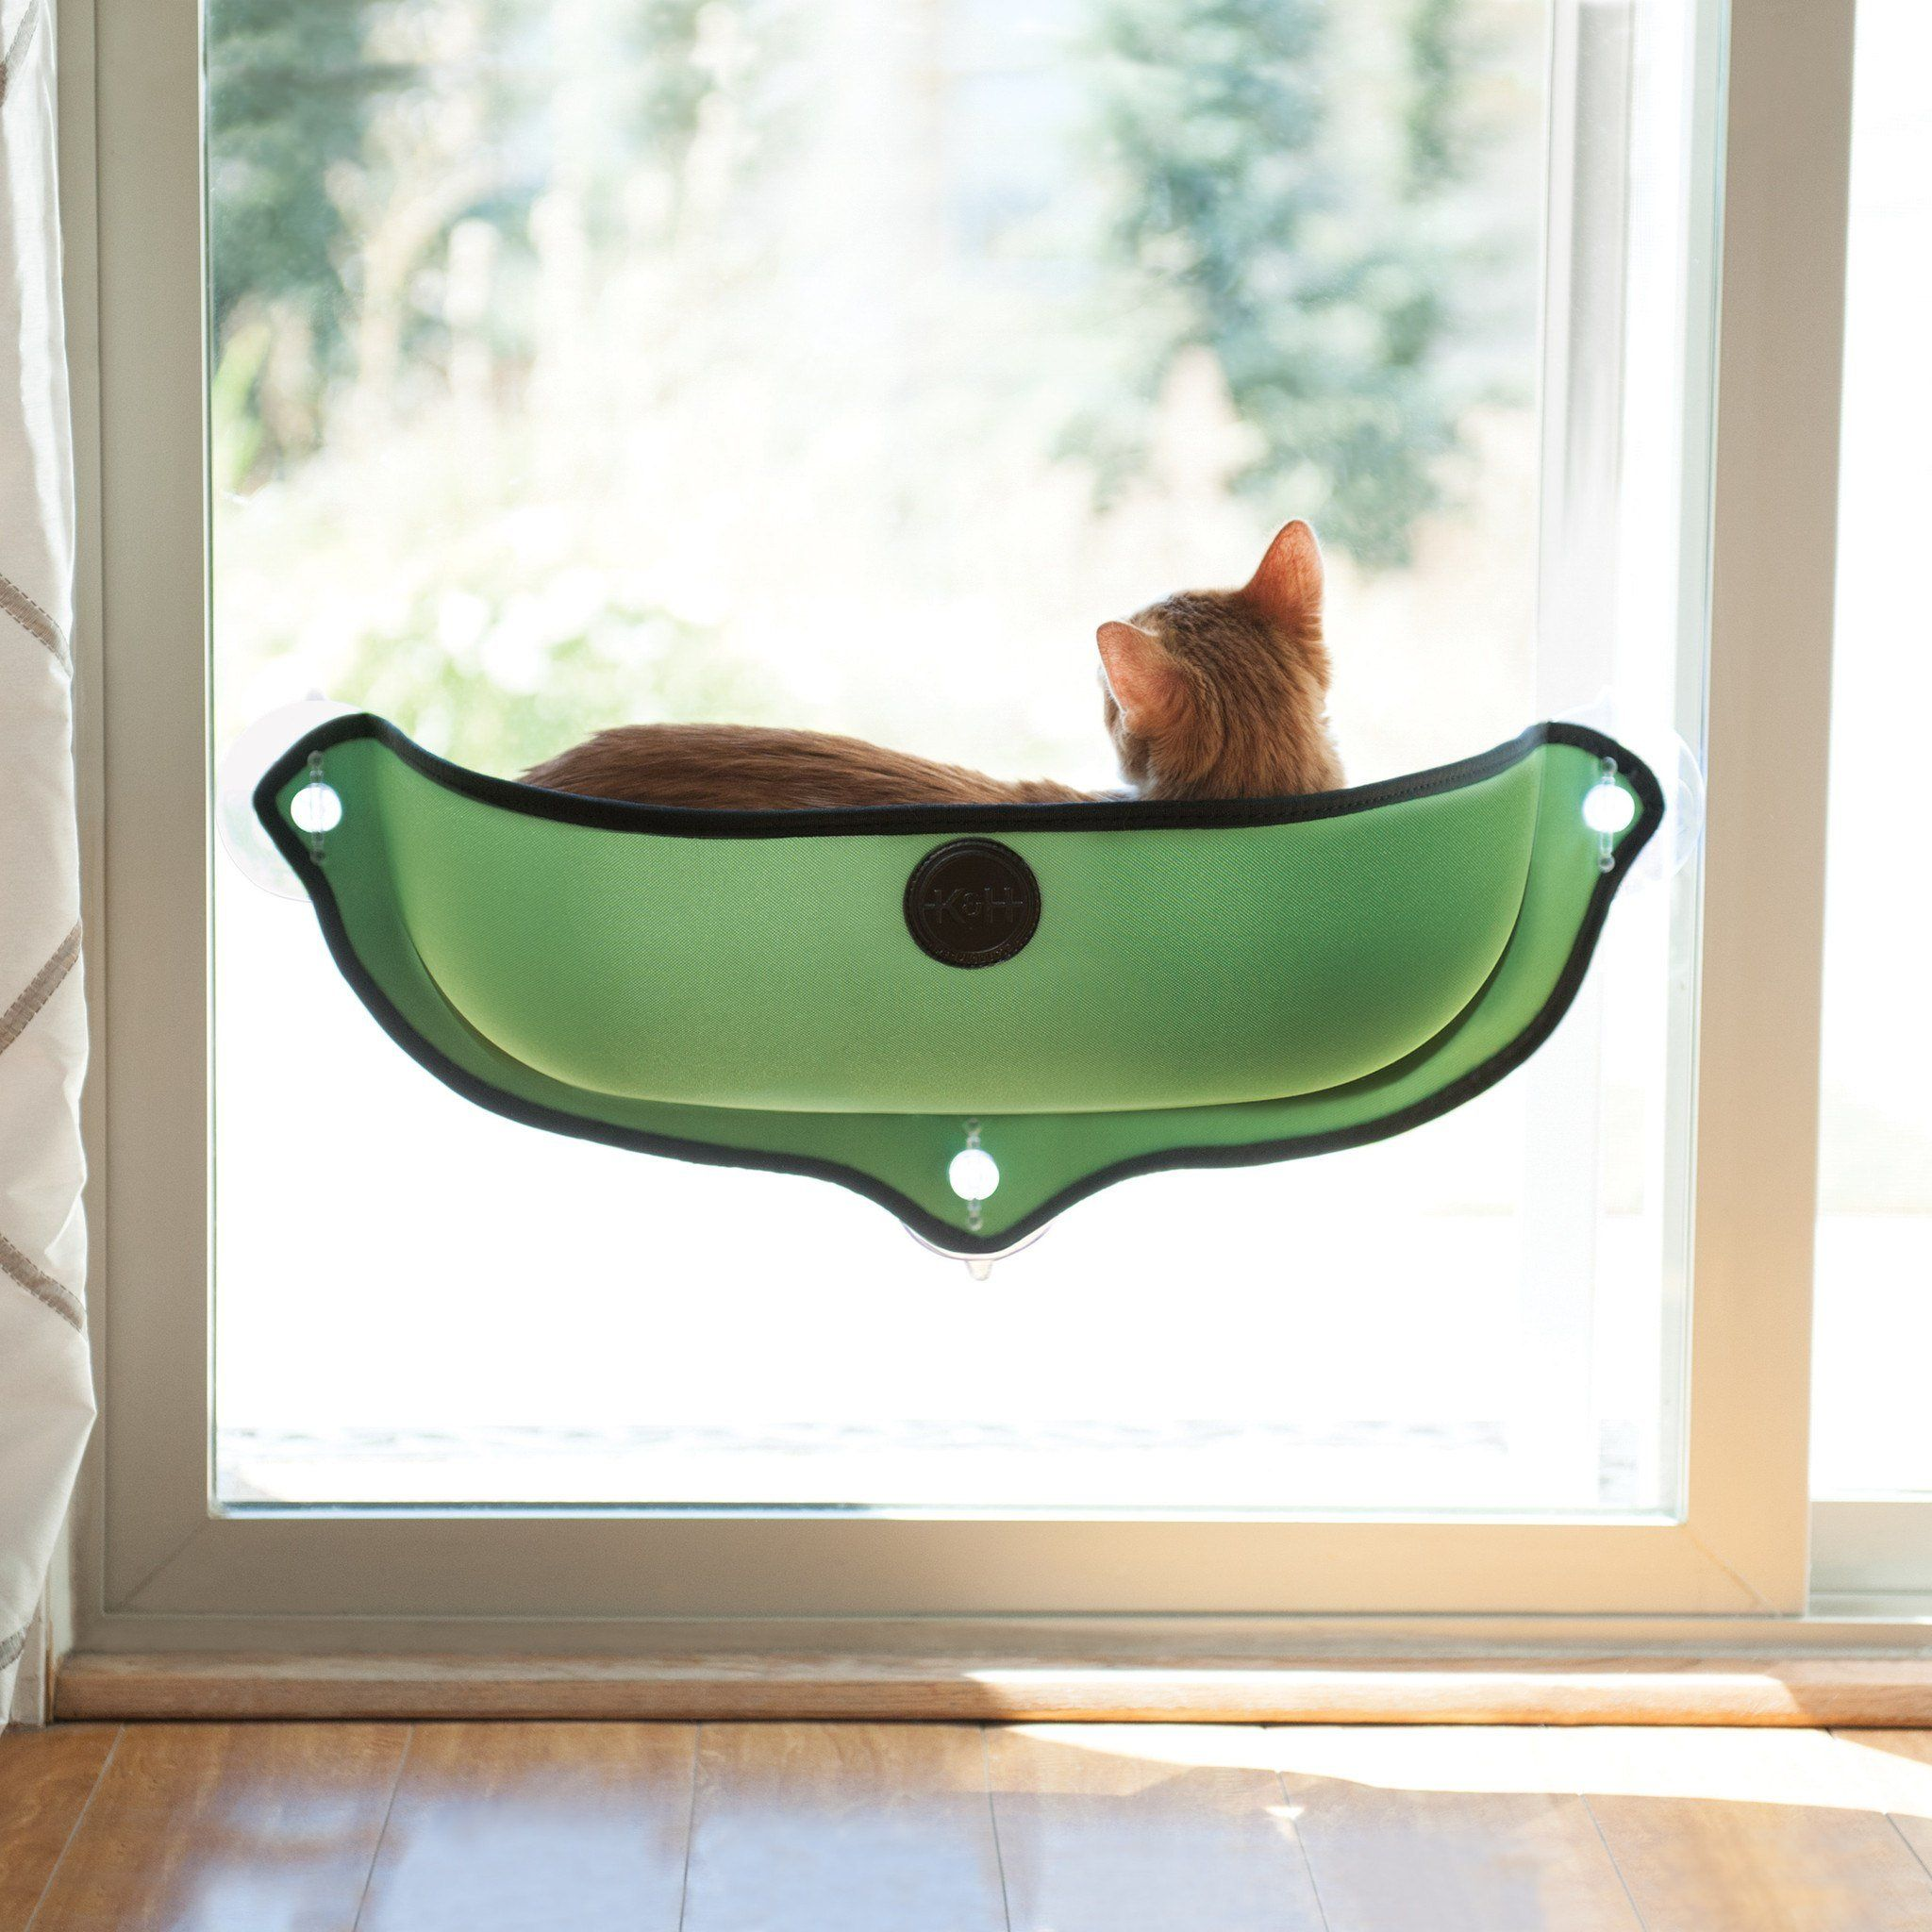 Window bed for cats  ez mount window bed  for the love of cats  pinterest  window